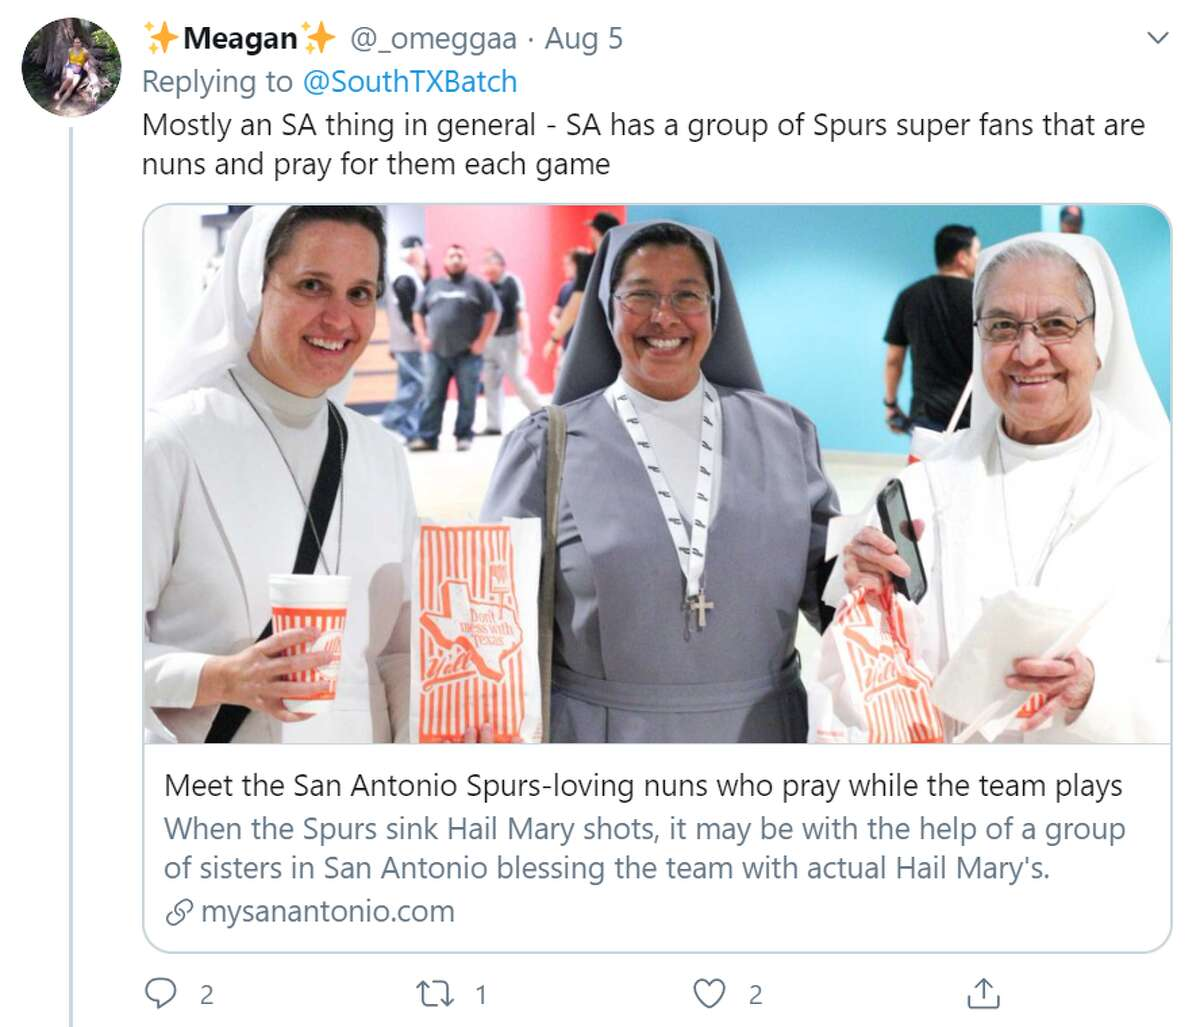 """@_omeggaa said """"Mostly an SA thing in general - SA has a group of Spurs super fans that are nuns and pray for them each game."""""""